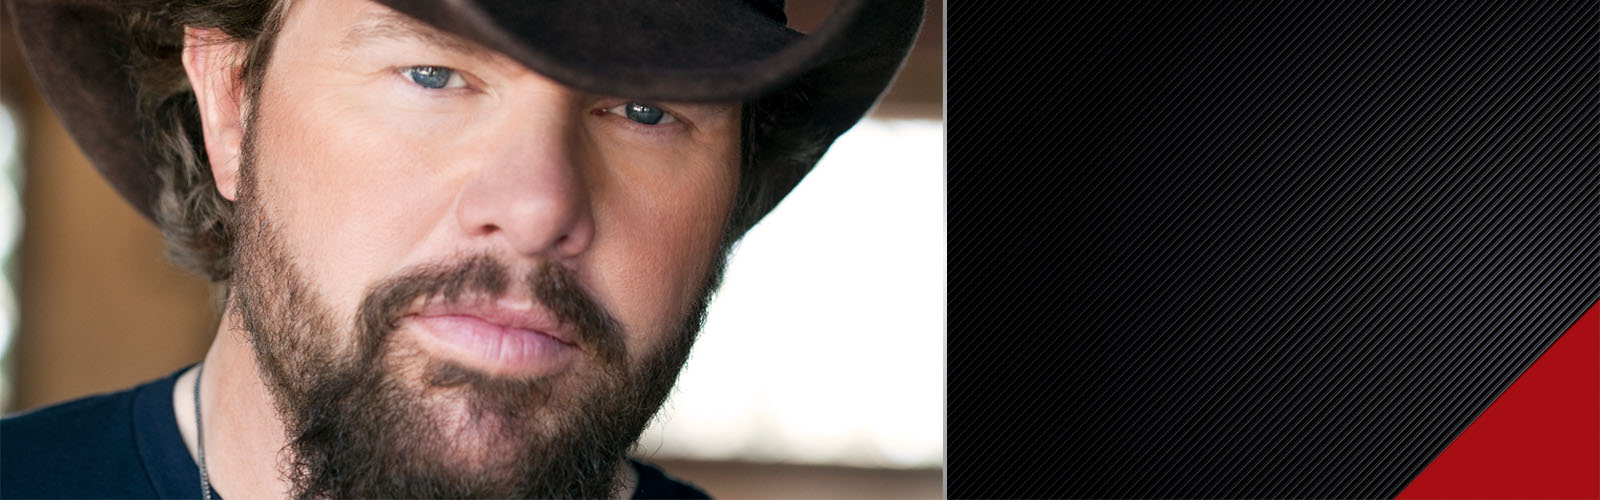 Toby Keith promo banner